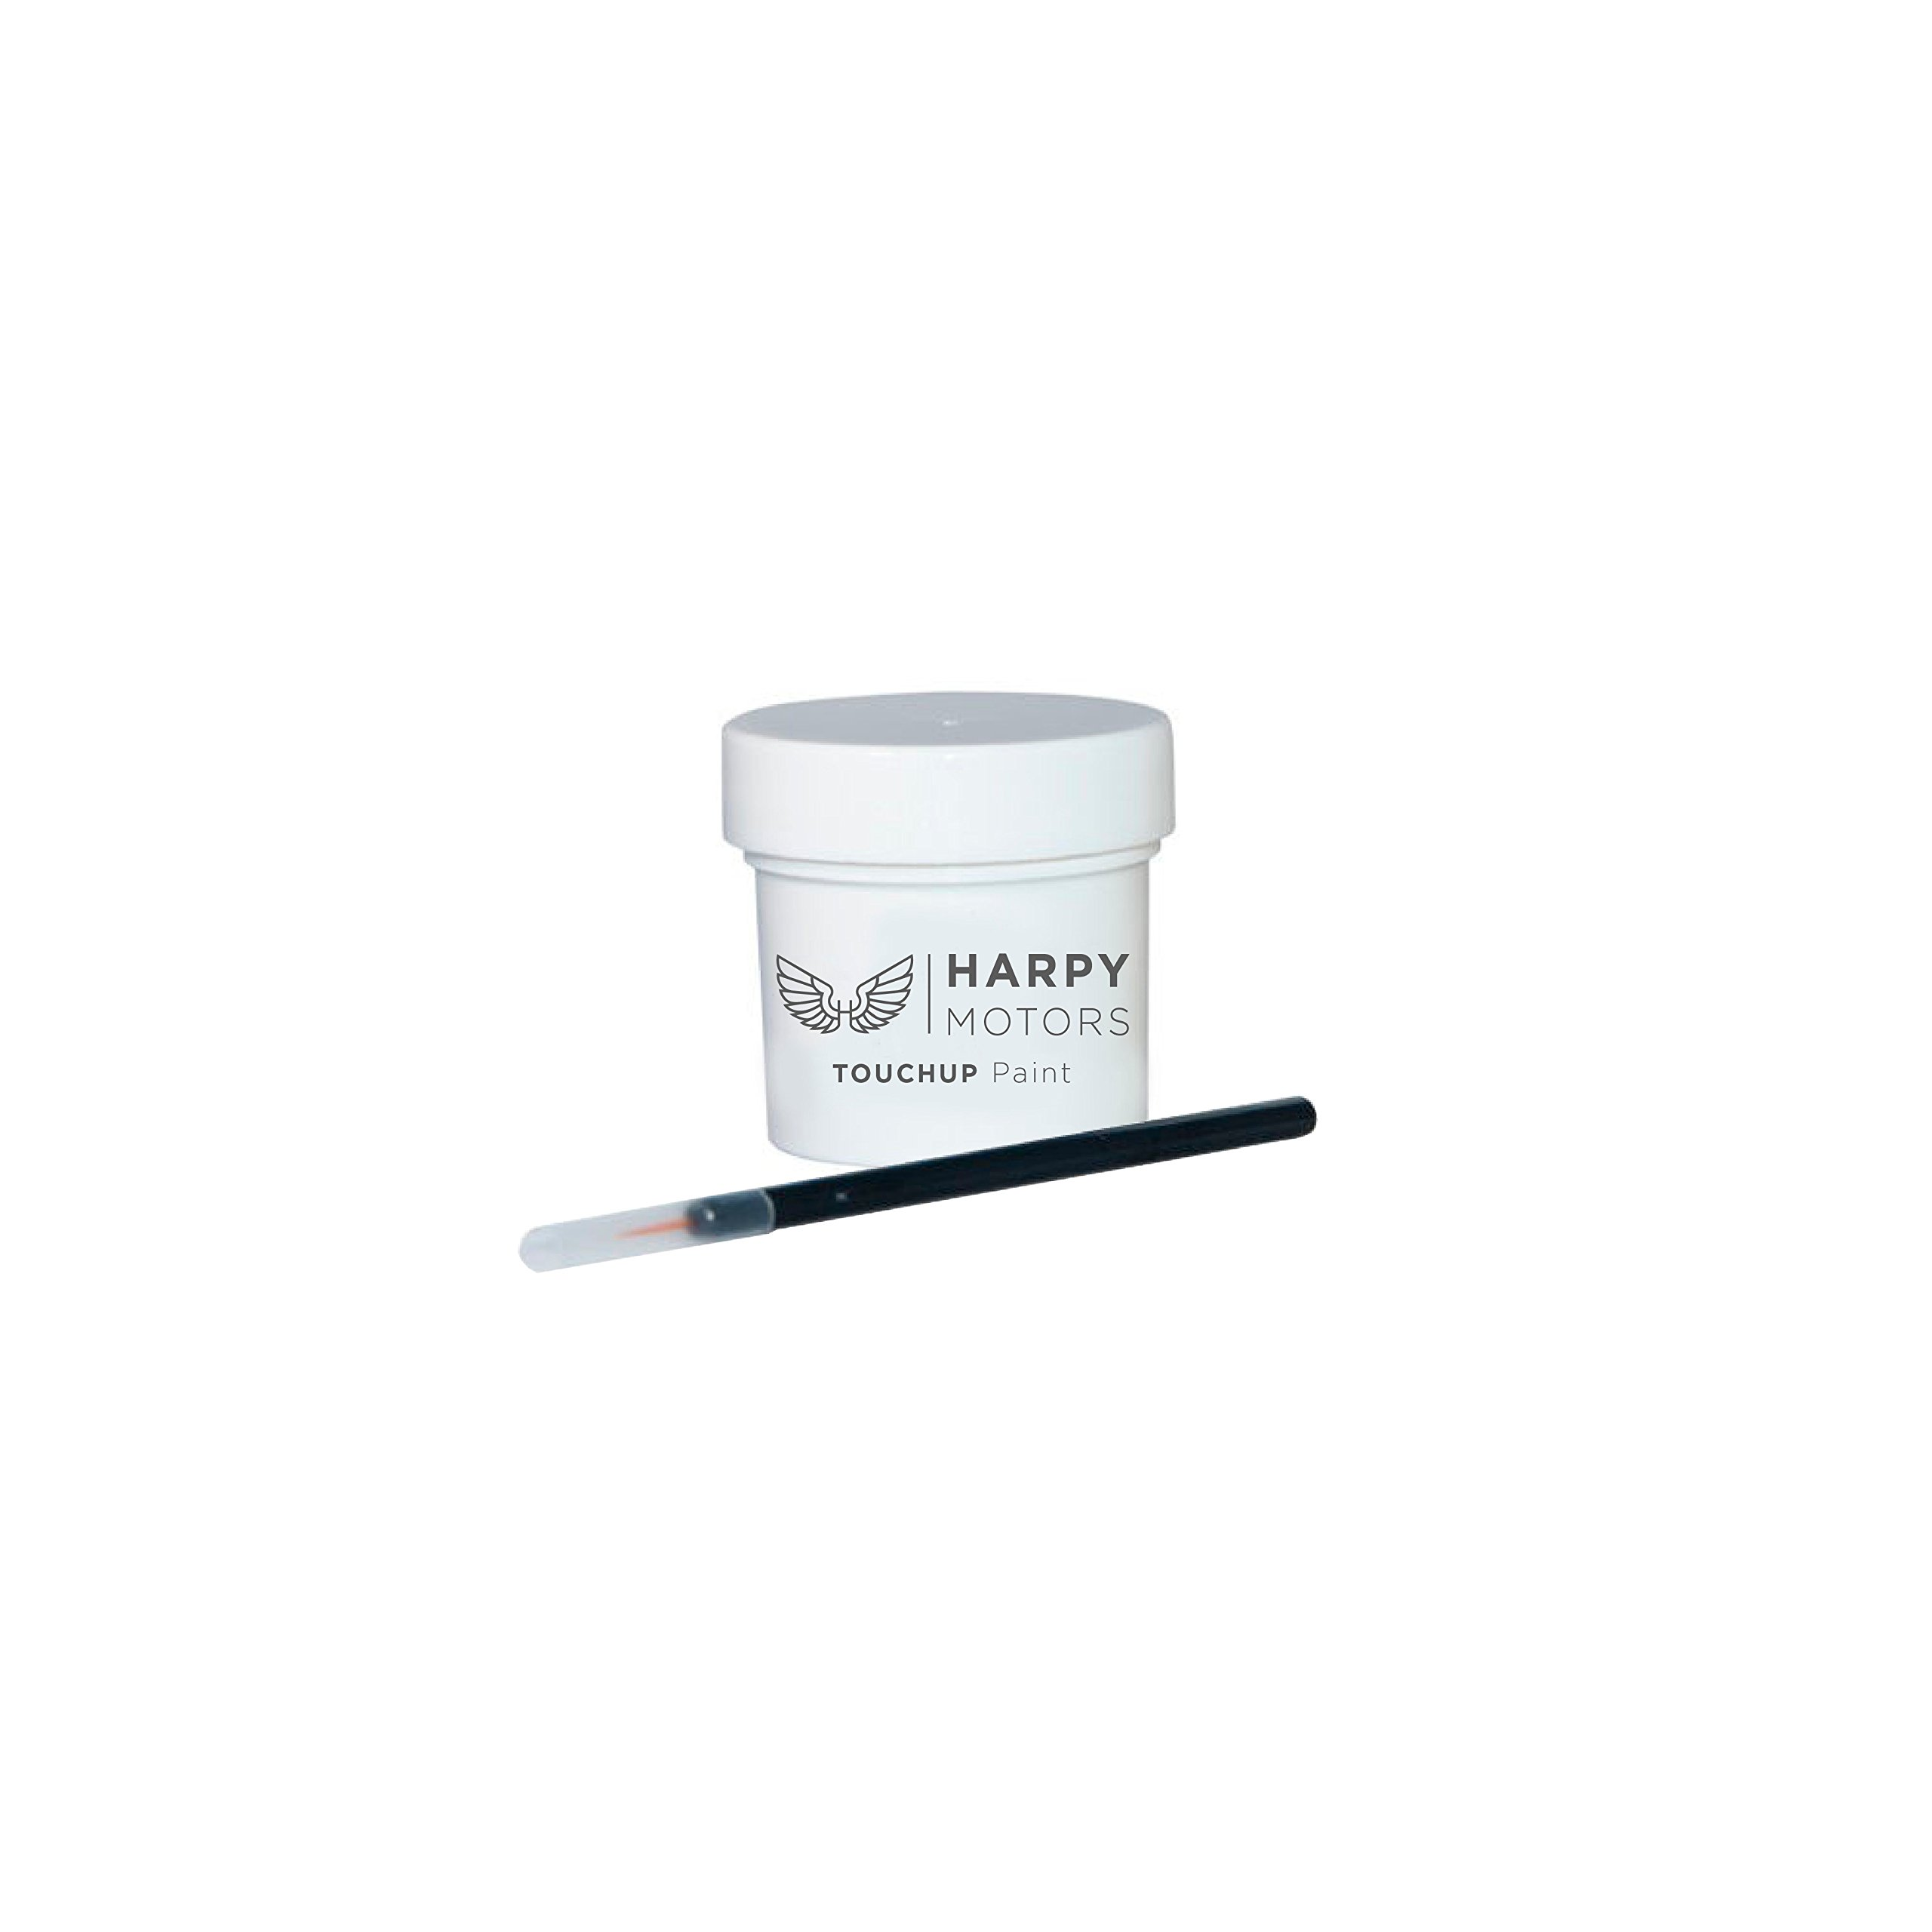 Harpy Motors 2017-2018 Mazda CX-5 25D Whitewater Pearl 1oz Professional Touch up Paint with Brush -Color Match Guaranteed